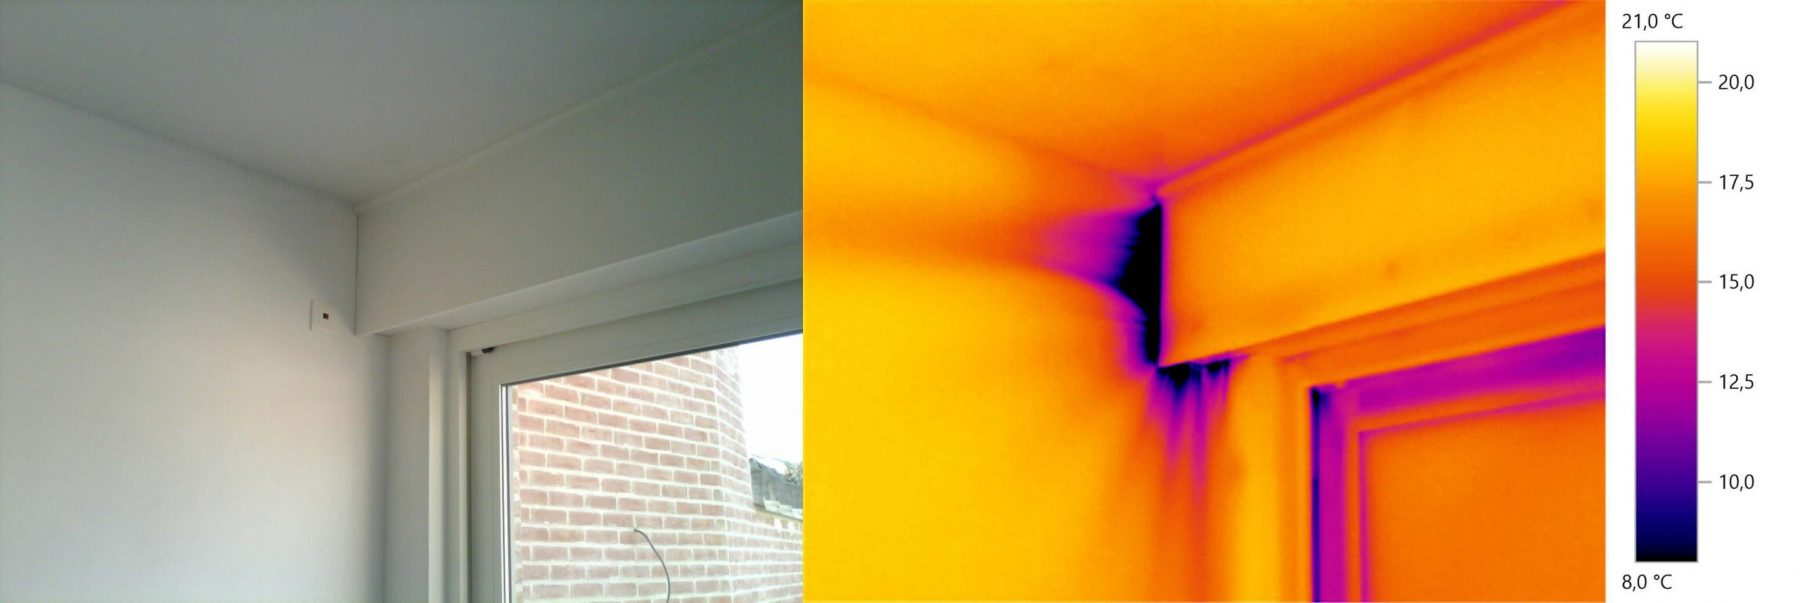 rolluik-thermografisch-beeld-scaled